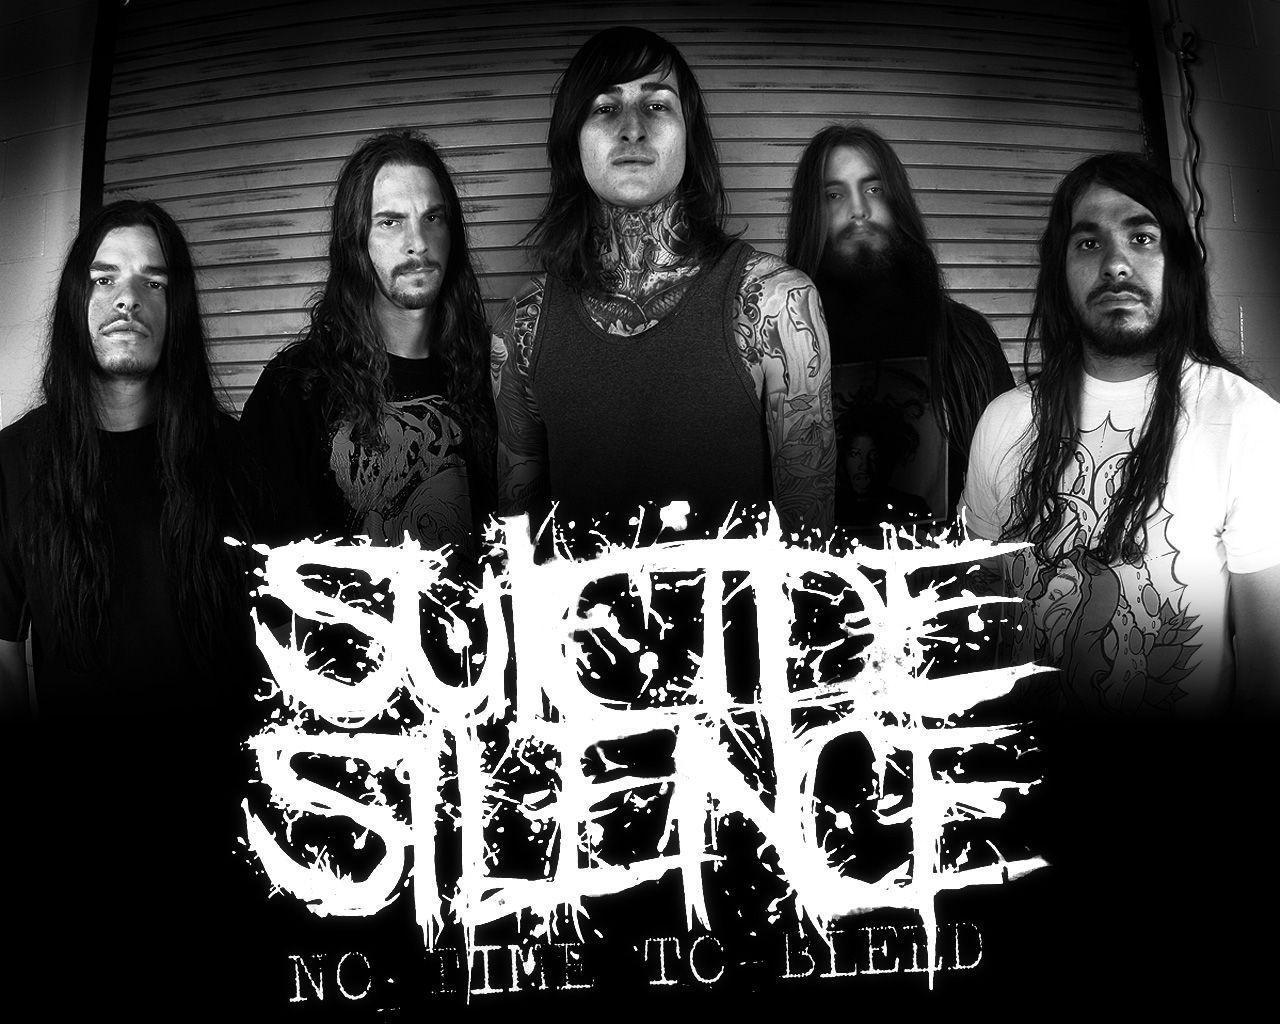 Image For > Suicide Silence No Time To Bleed Wallpapers